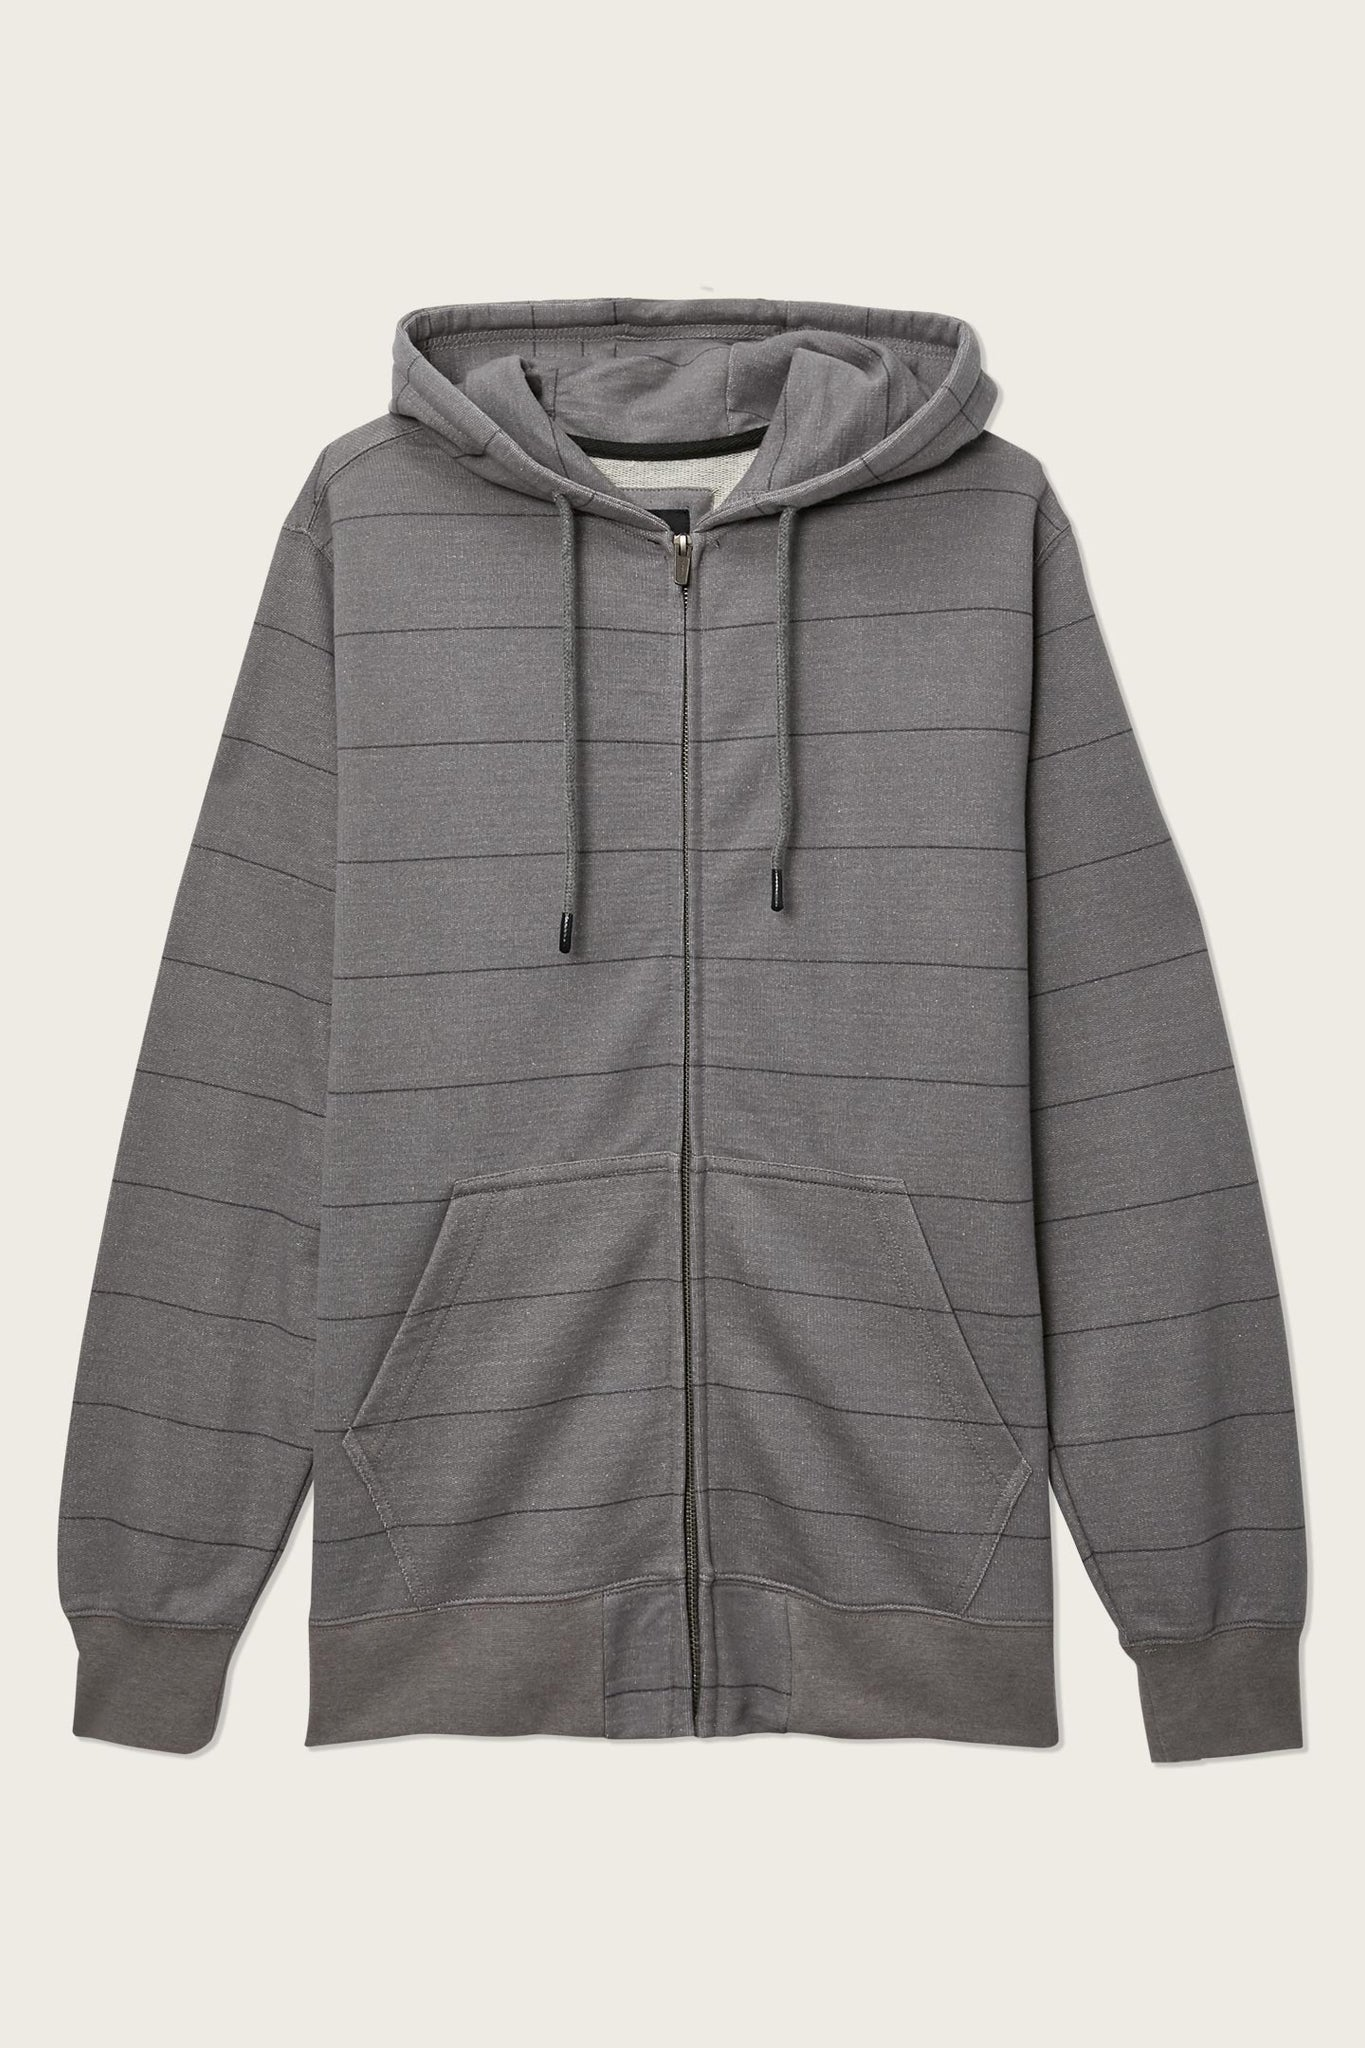 Whitechapel Stripe Zip Up Hoodie - Grey | O'Neill